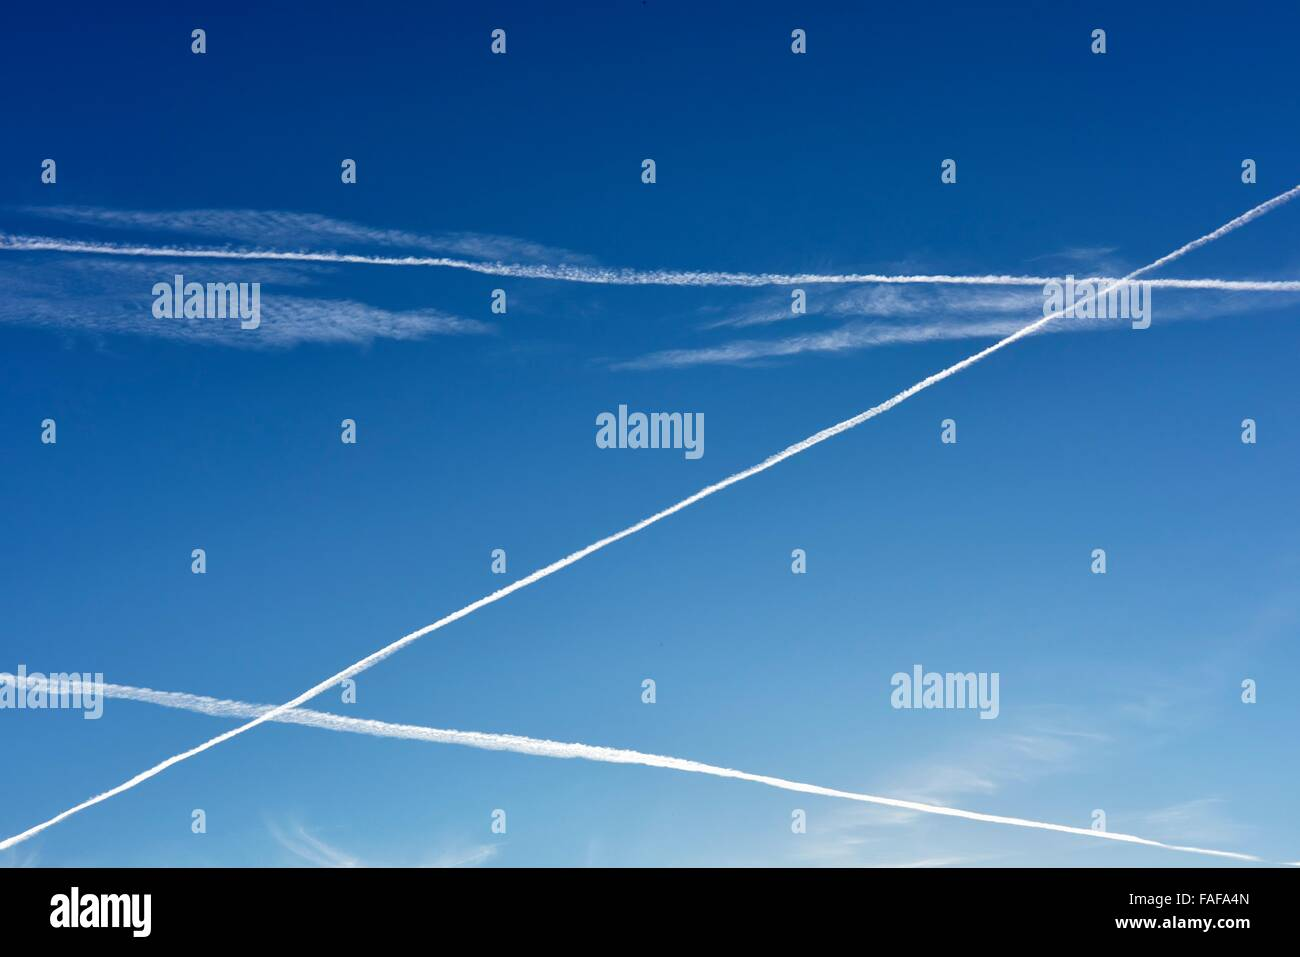 Contrails of airplanes in the sky, Bavaria, Germany - Stock Image